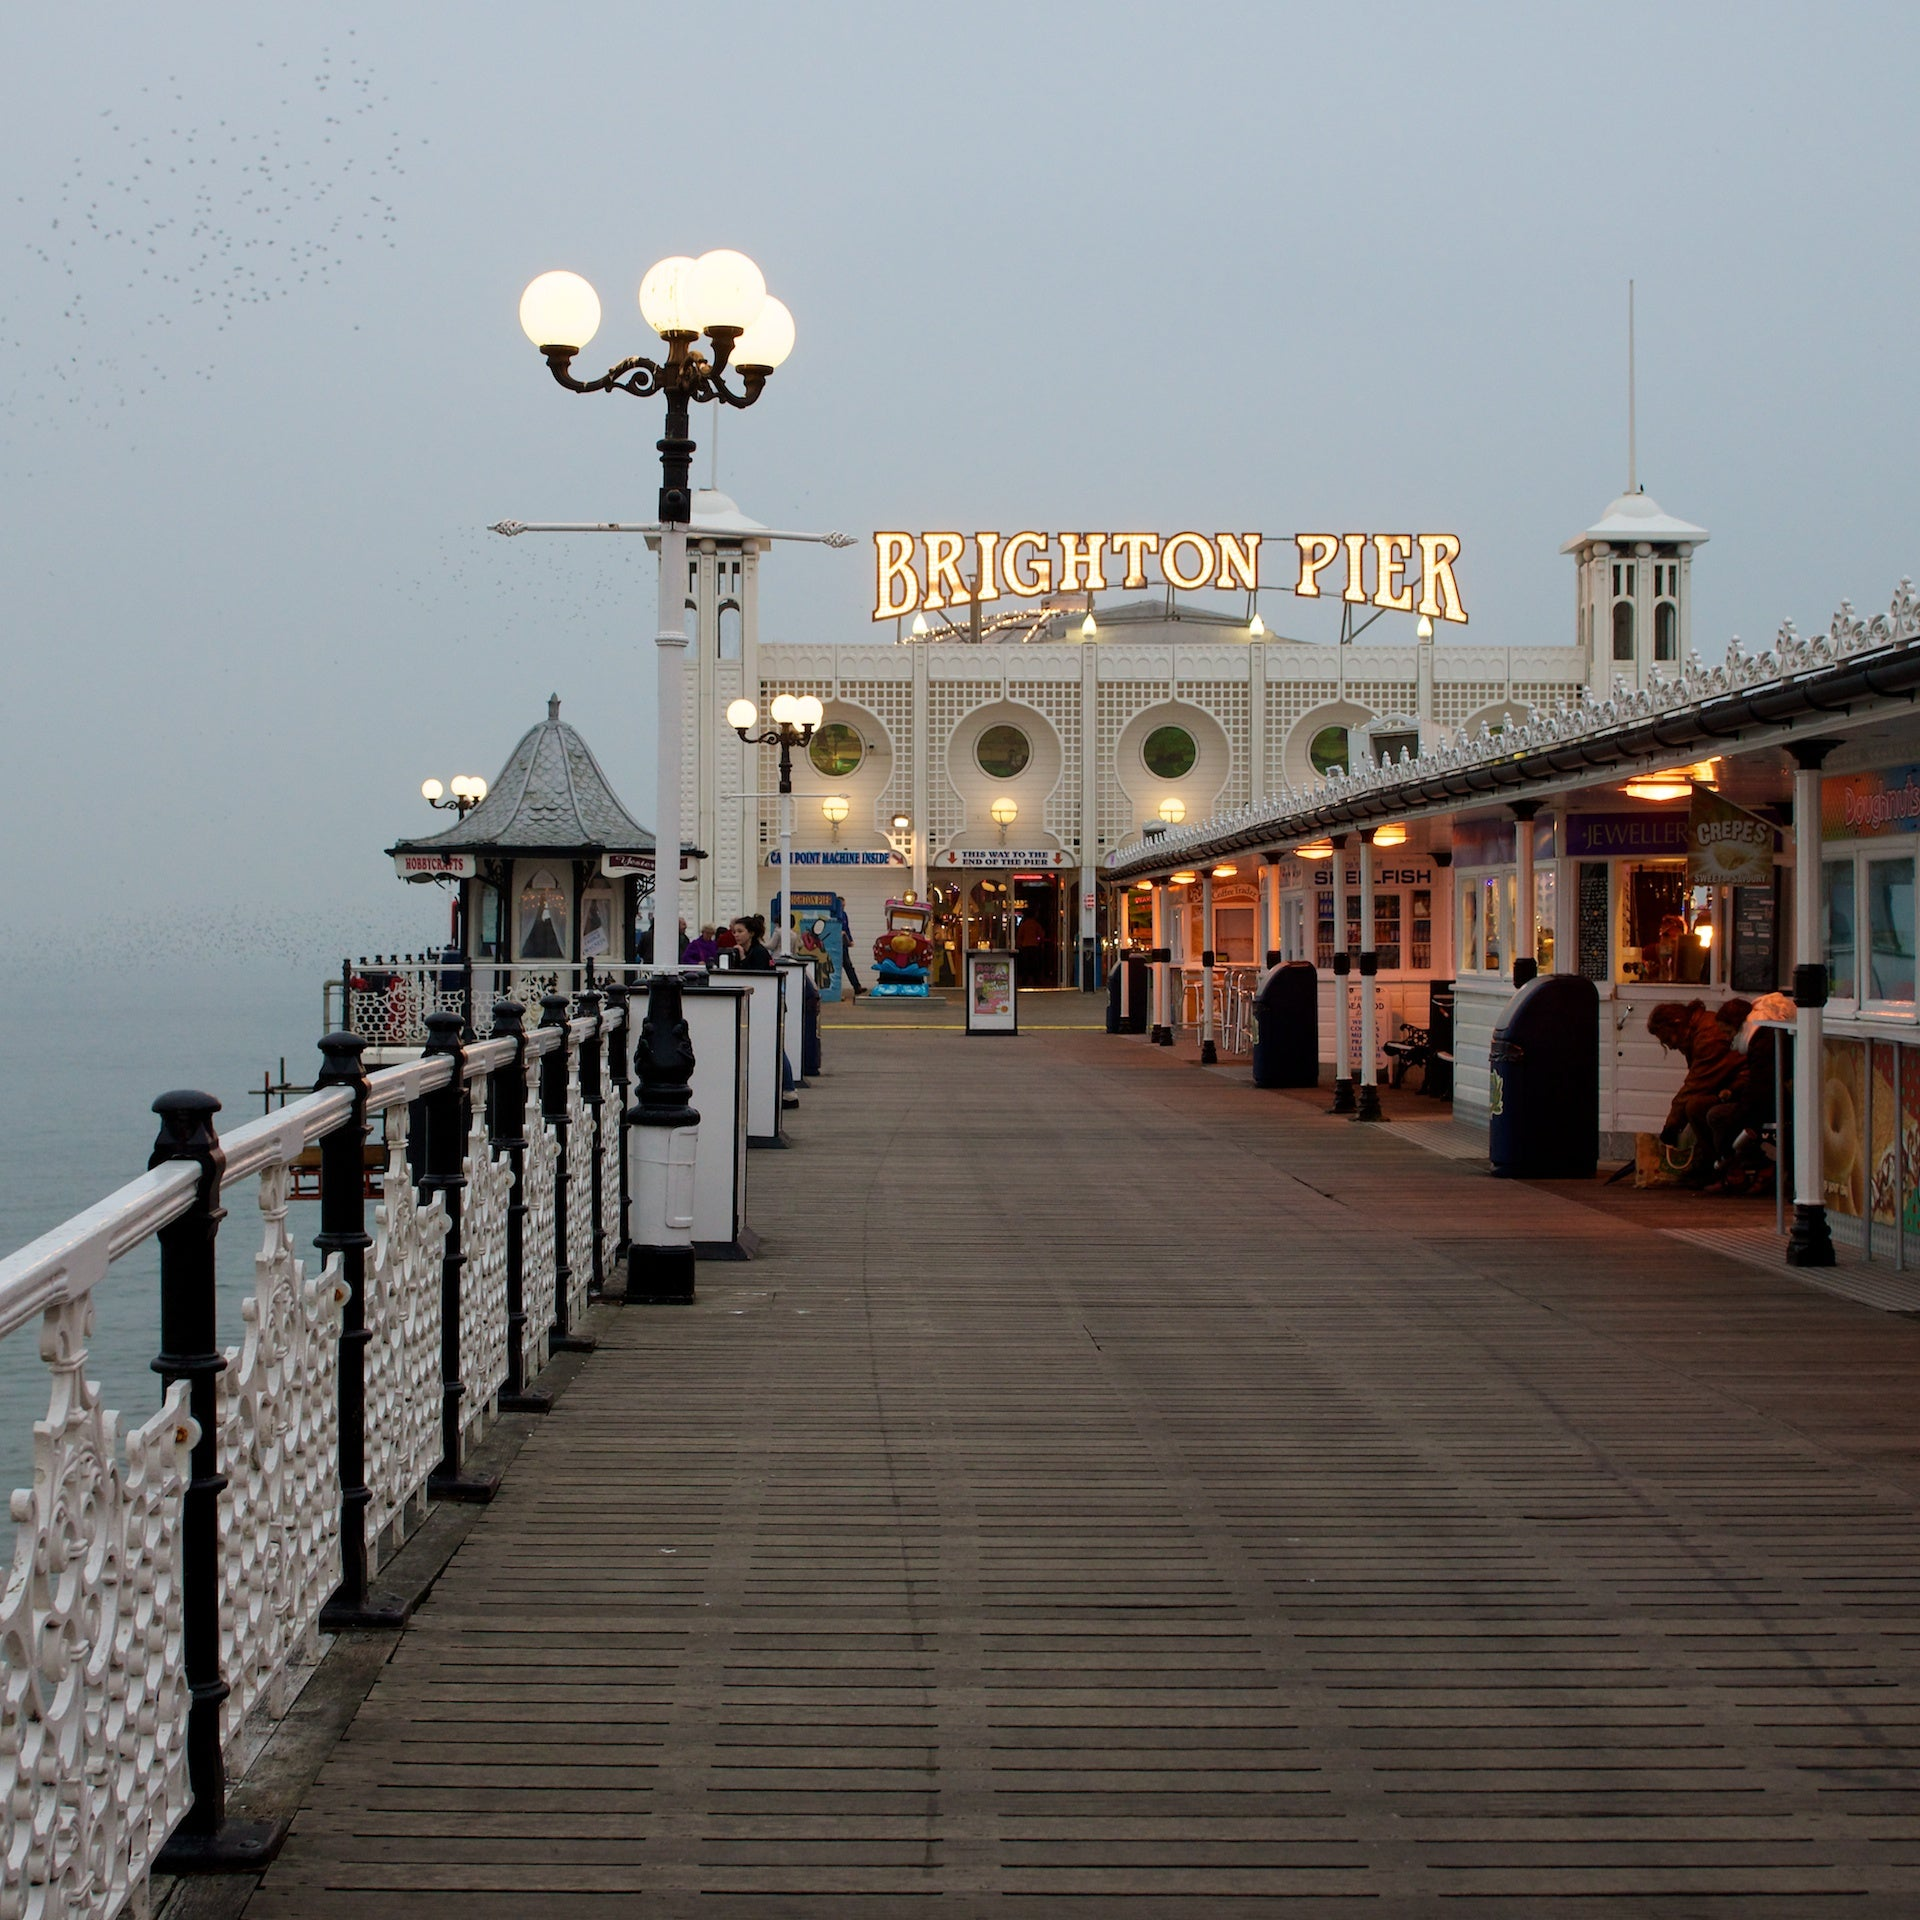 I was only meant to stay for a night, but here I still am, in the gloom and glamour of Brighton